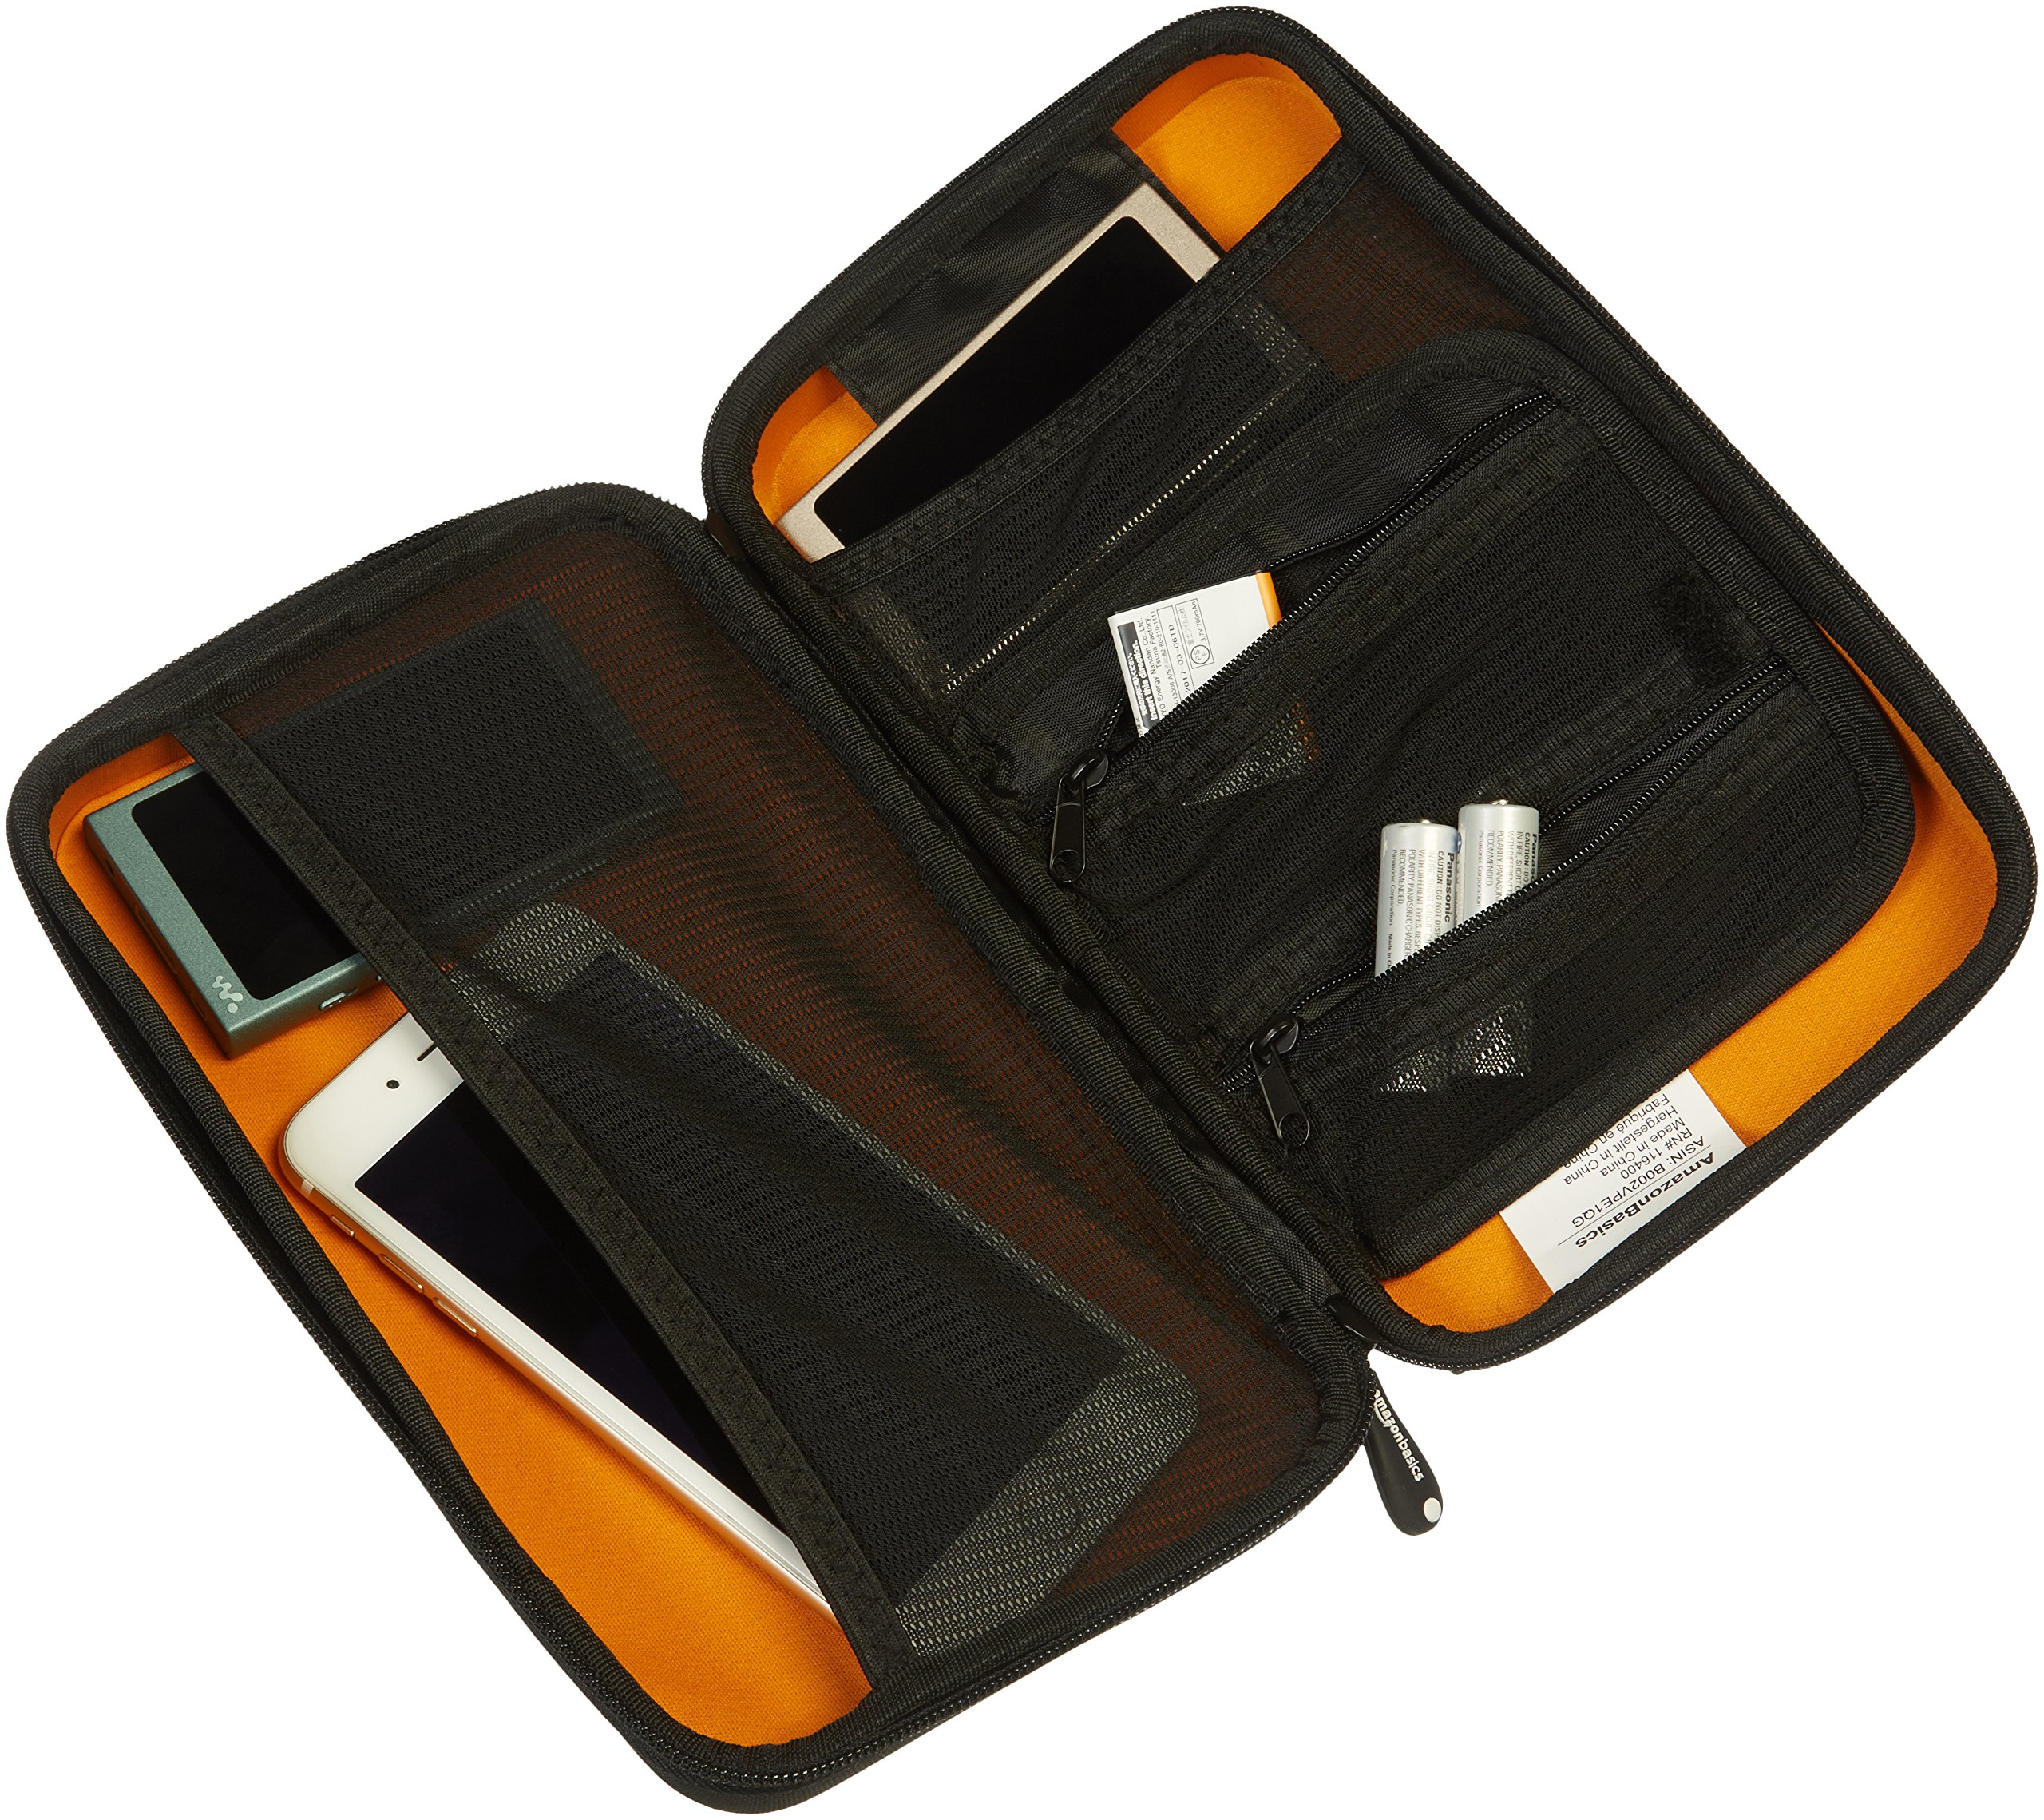 AmazonBasics Universal Travel Case for Small Electronics and Accessories, Black by AmazonBasics (Image #4)